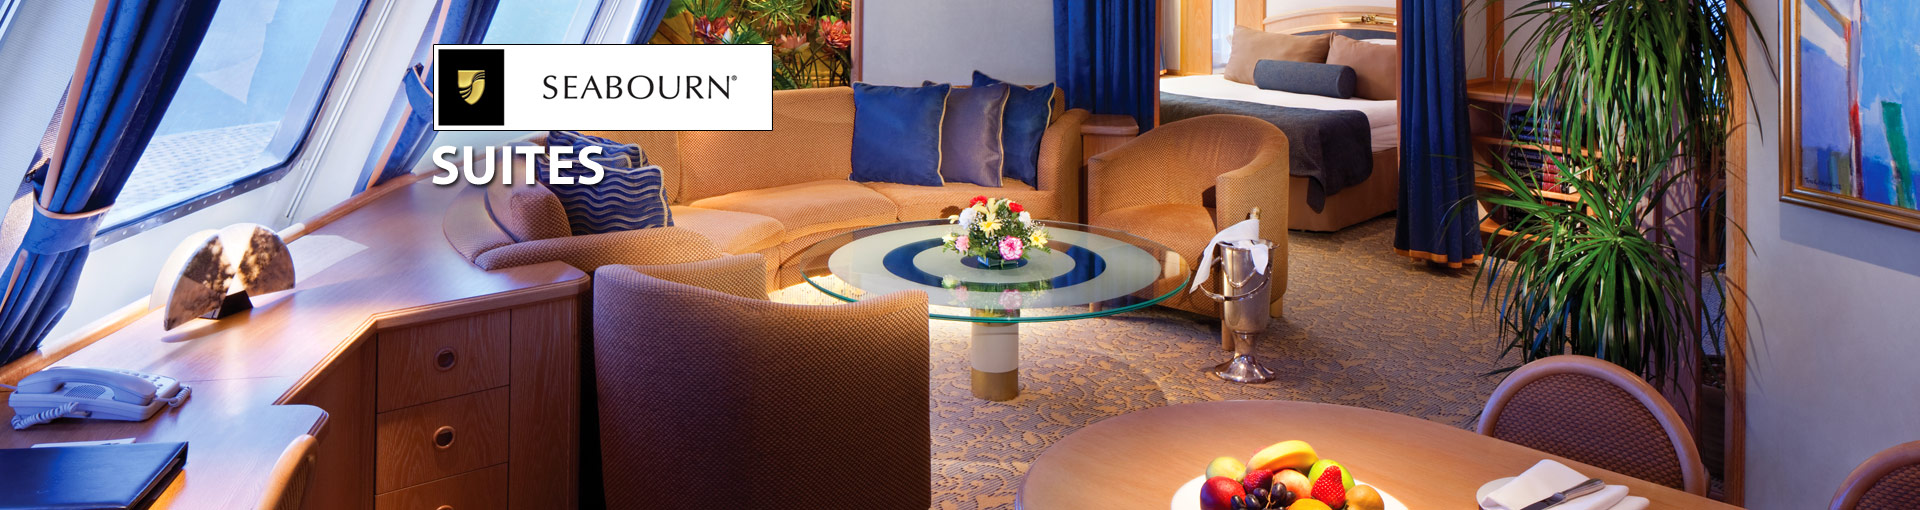 Seabourn Cruise Line Suites